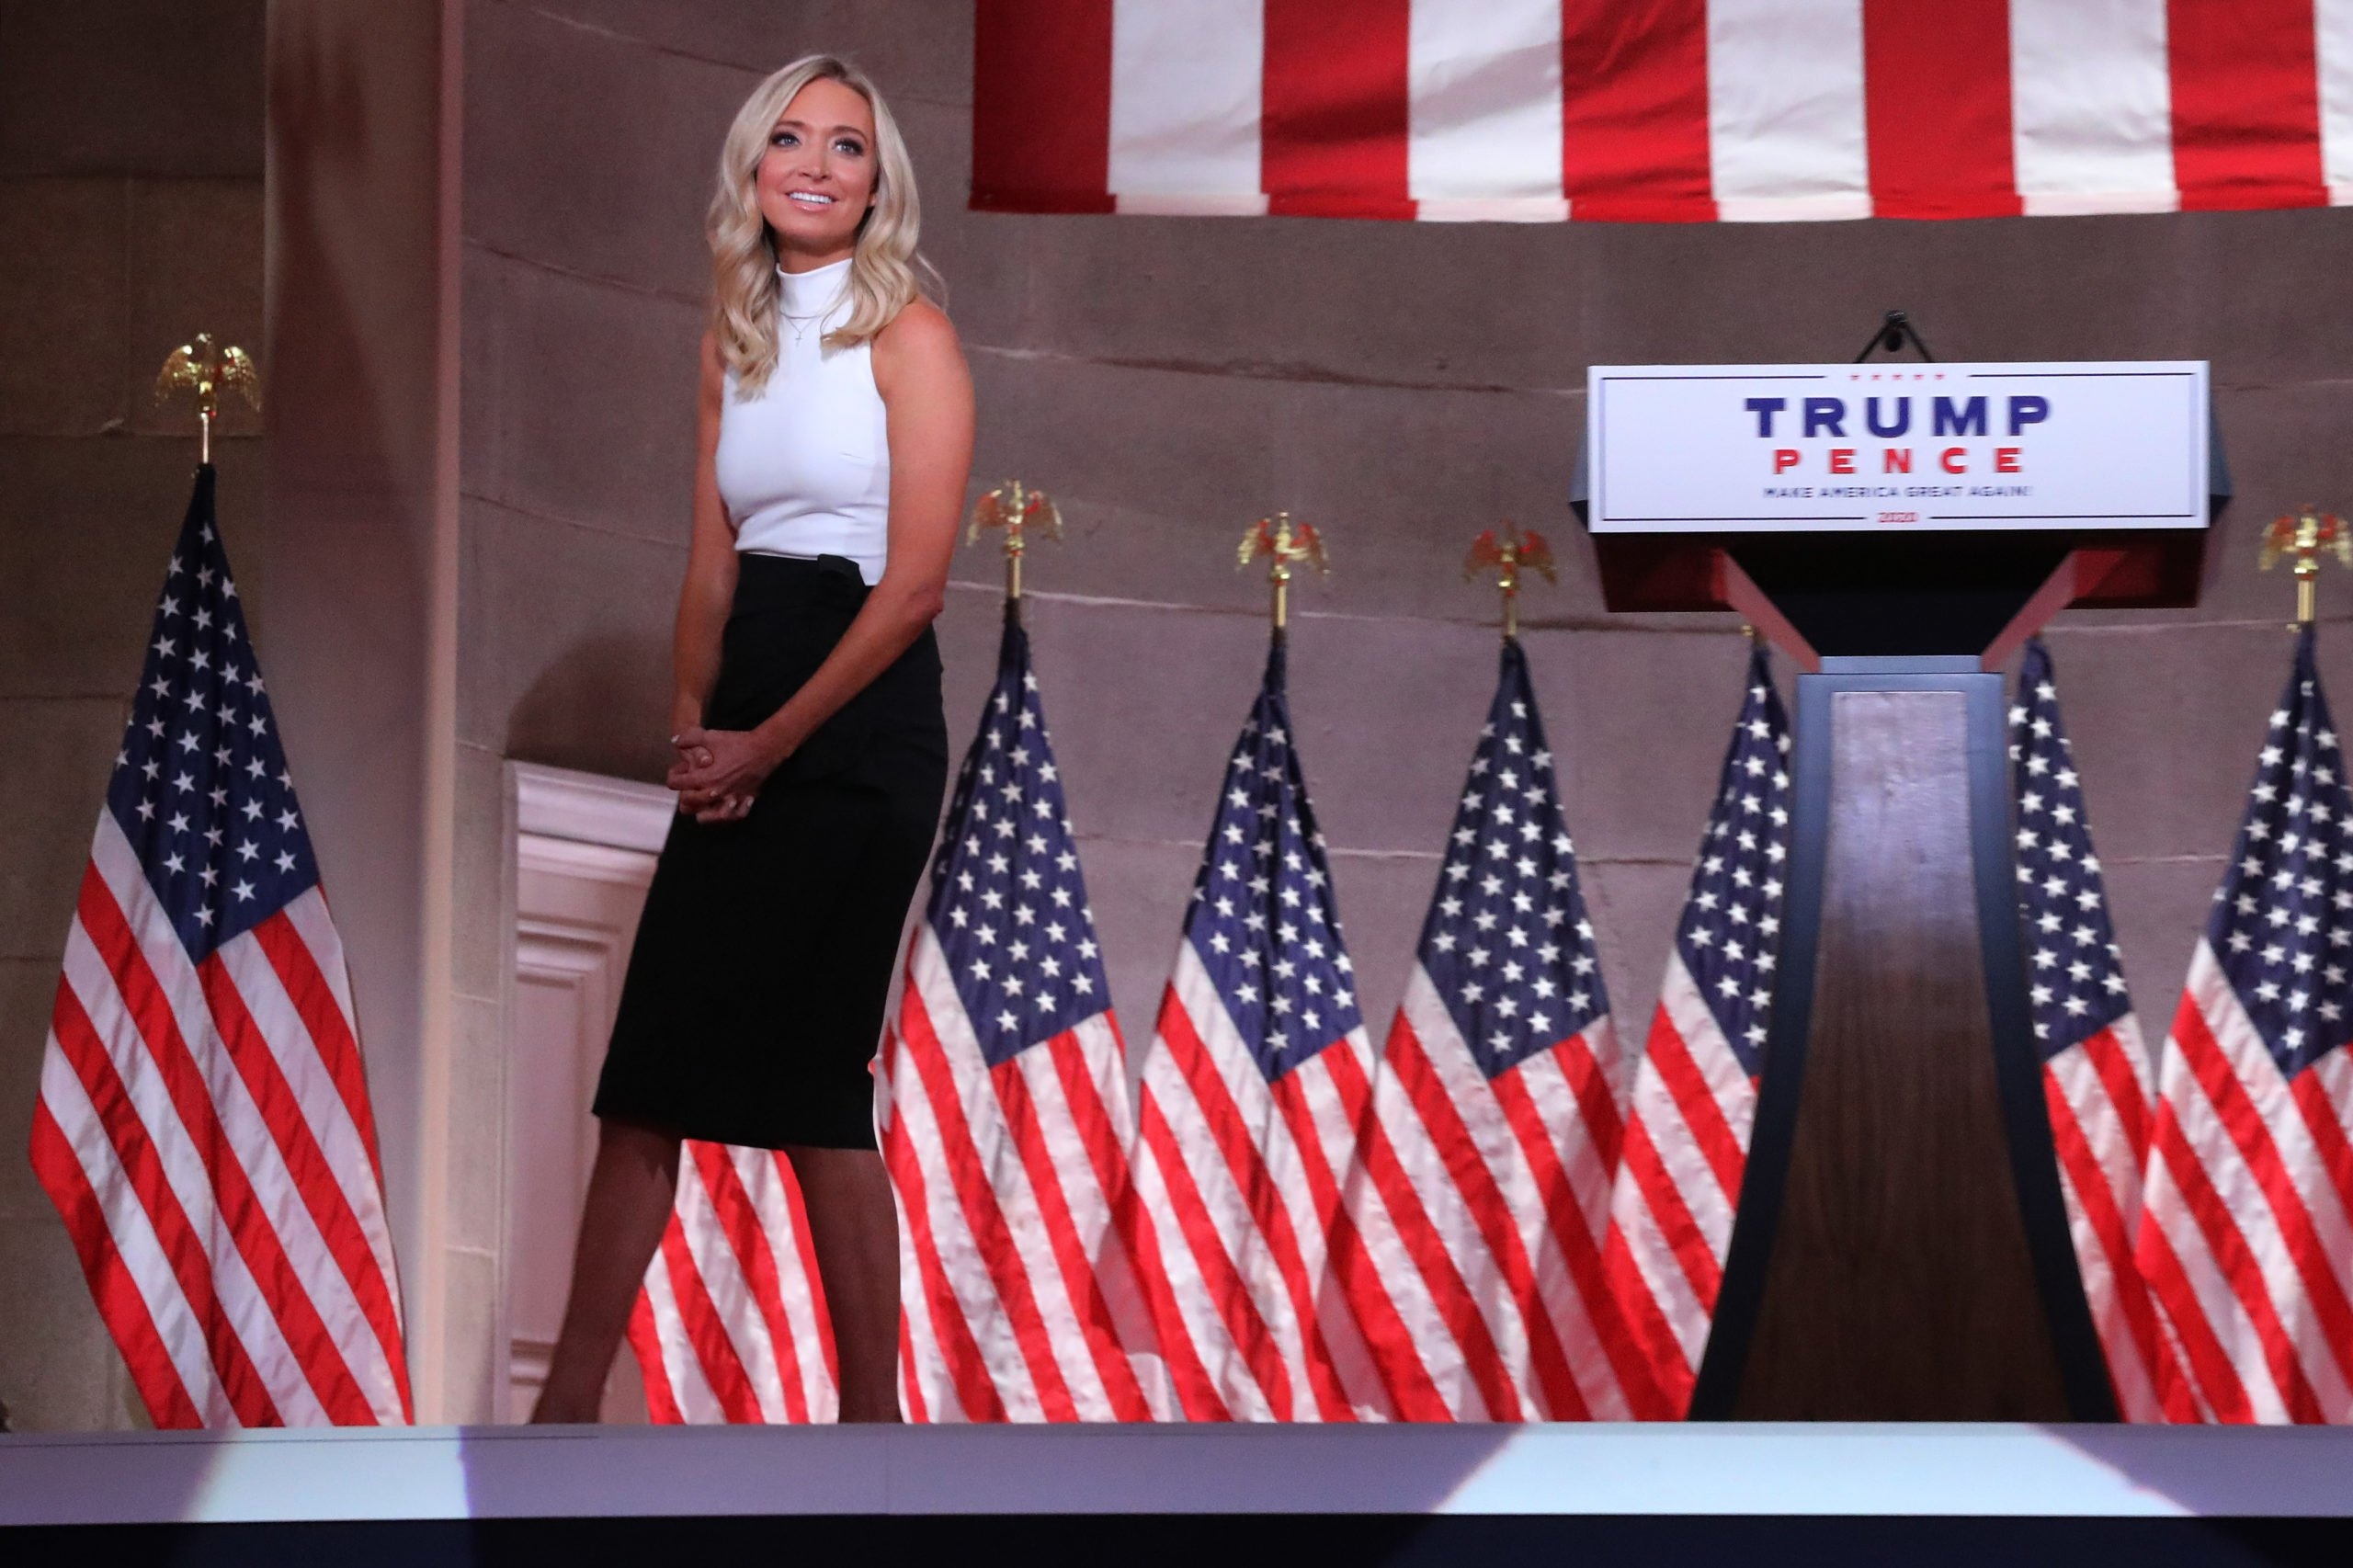 WASHINGTON, DC - AUGUST 26: White House Press Secretary Kayleigh McEnany walks off the stage after pre-recording her address to the Republican National Convention from inside an empty Mellon Auditorium on August 26, 2020 in Washington, DC. The novel coronavirus pandemic has forced the Republican Party to move away from an in-person convention to a televised format, similar to the Democratic Party's convention a week earlier. (Photo by Chip Somodevilla/Getty Images)